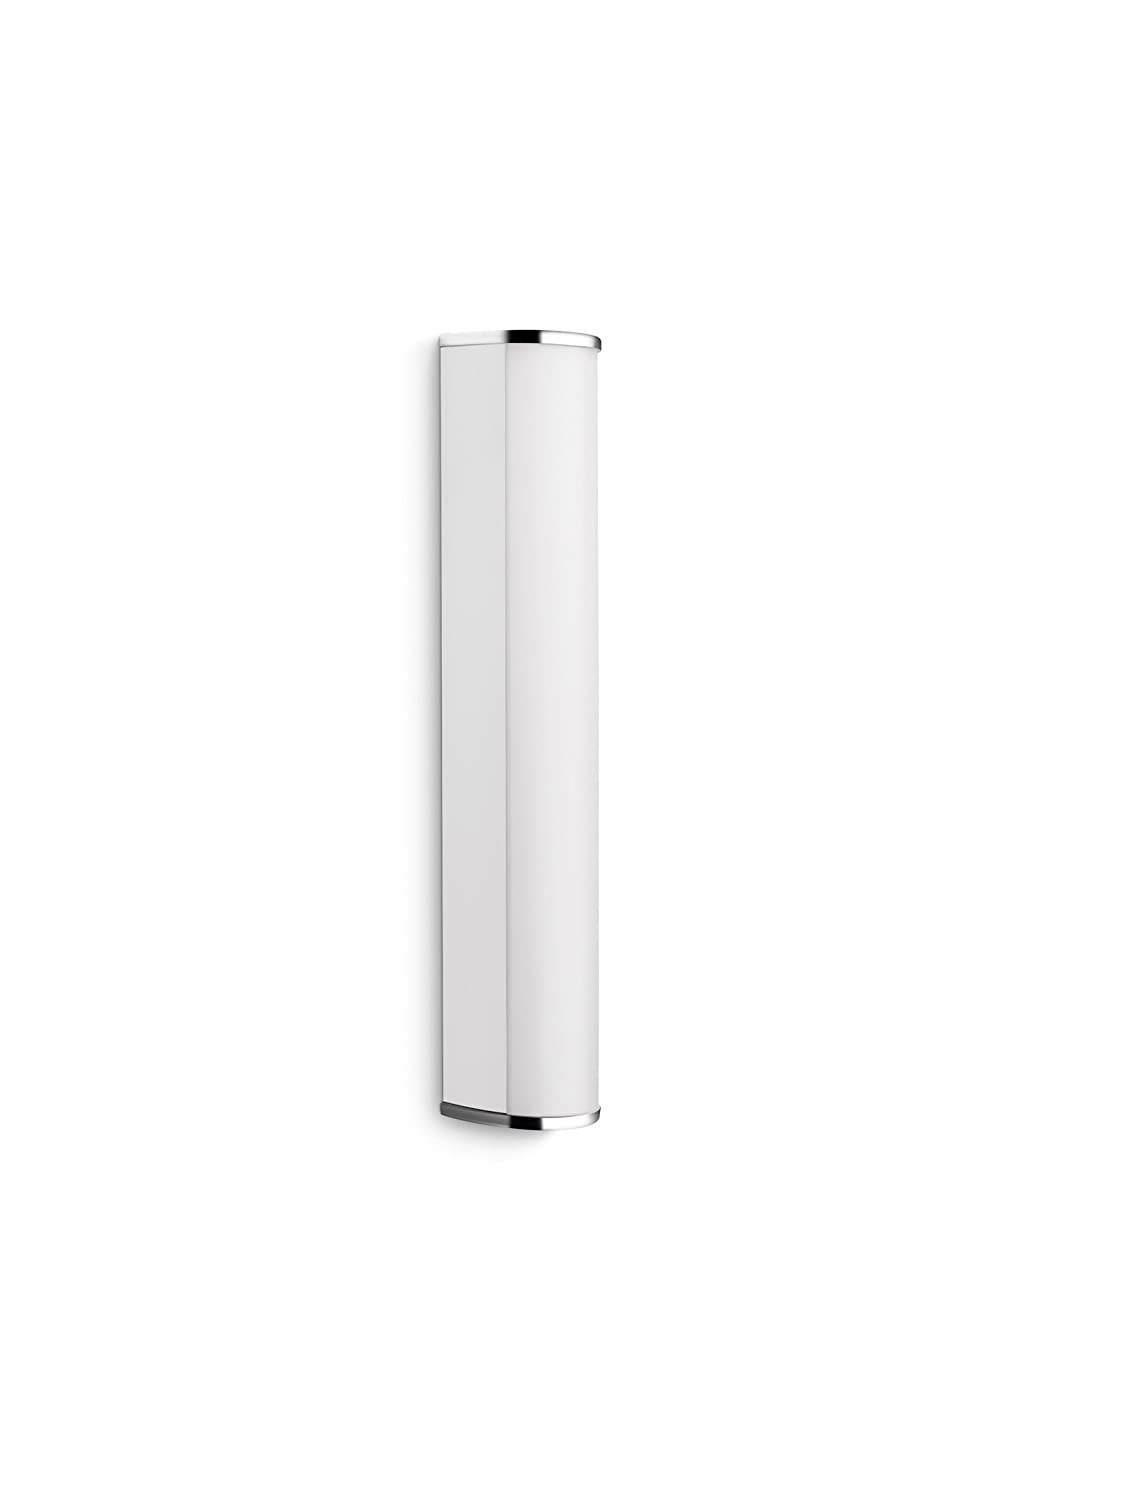 Philips 340581116 applique murale led fit eclairage salle de bain ...